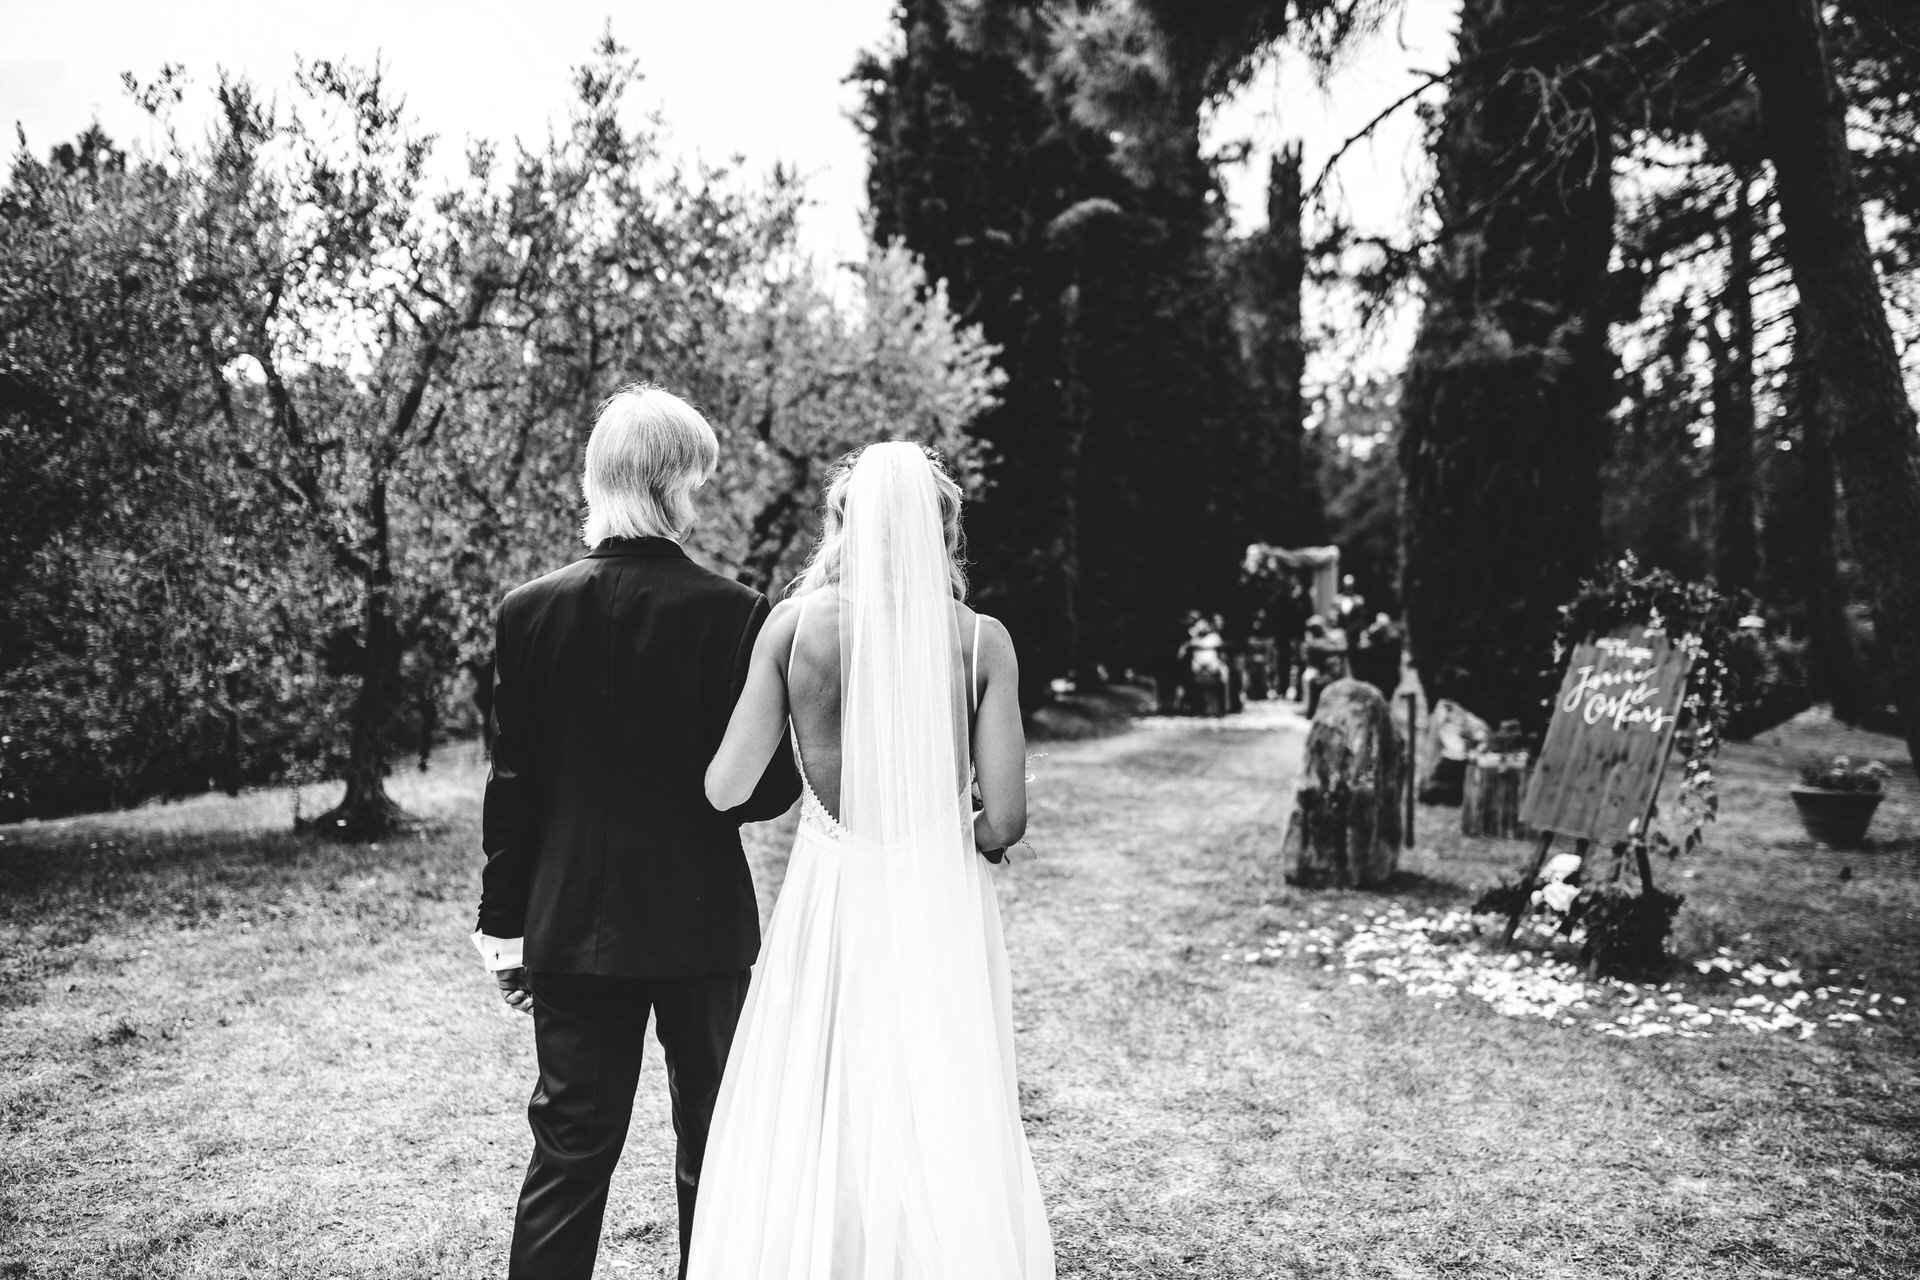 The bride and her father arrive at the symbolic ceremony in the garden of villa at Villa Olimpia, Ambra, Tuscany